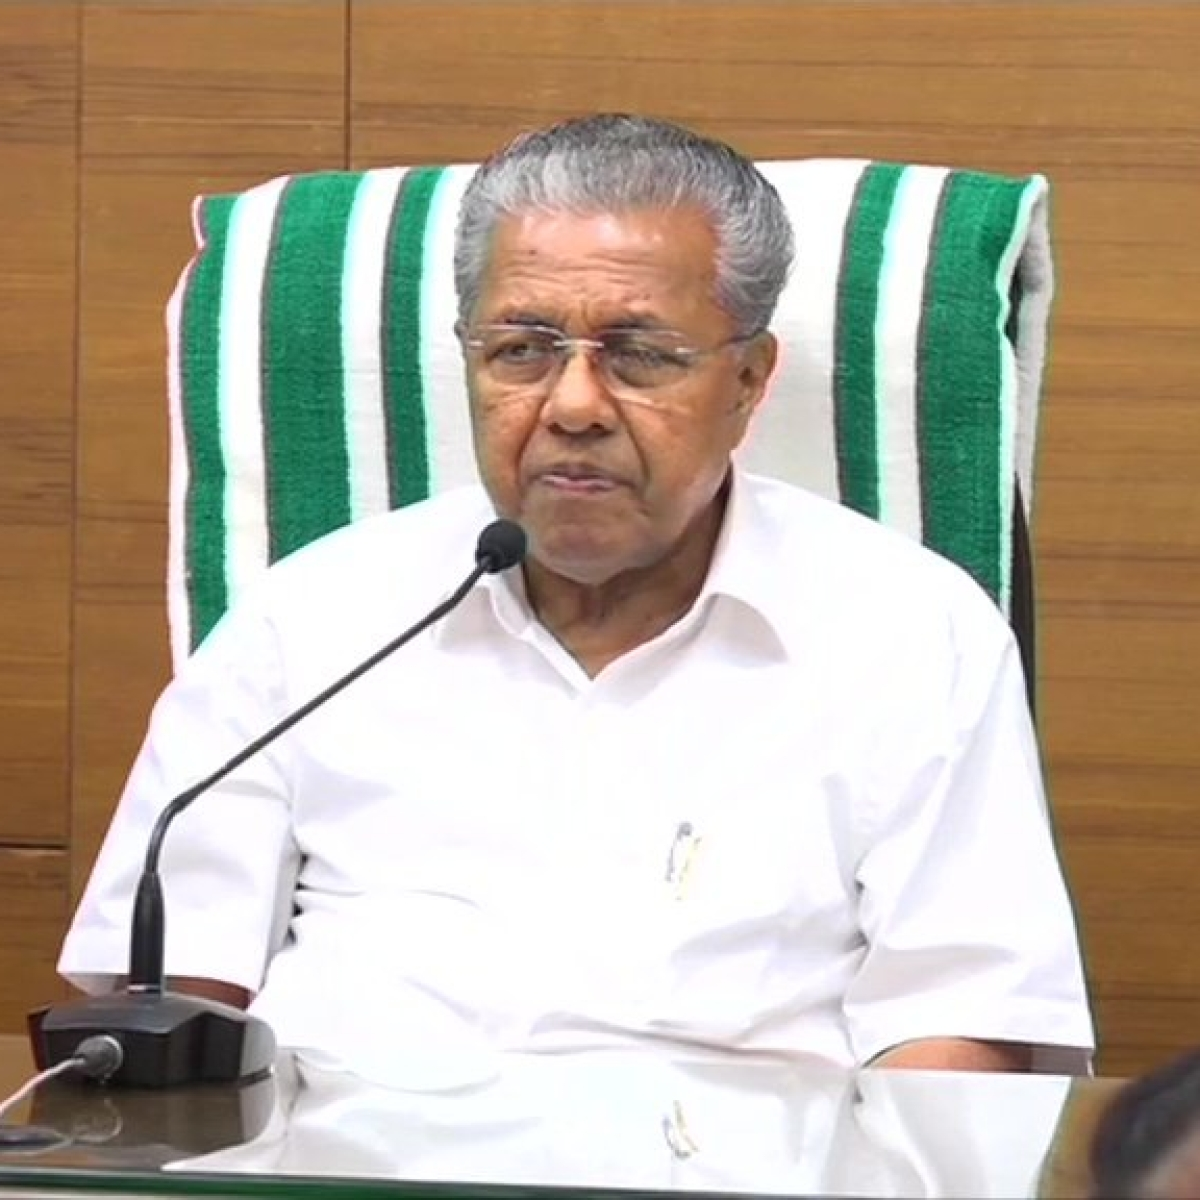 Coronavirus in Kerala: Quarantine becomes a hot political issue for Pinarayi Vijayan's government